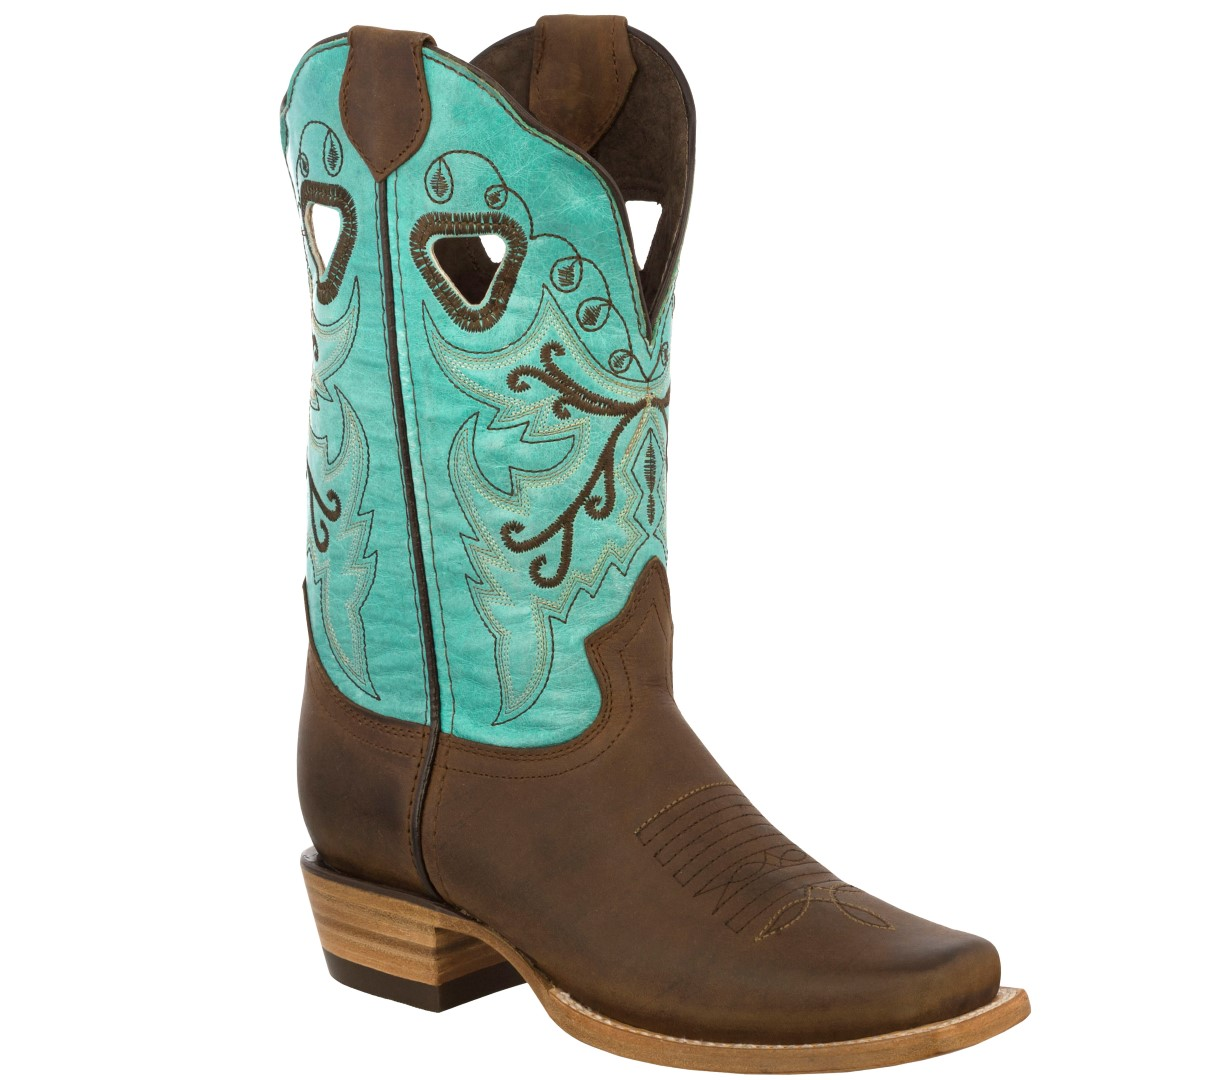 Details about Womens Wide Calf Leather Cowboy Boots Western Dama Botas  Vaquera Turquoise